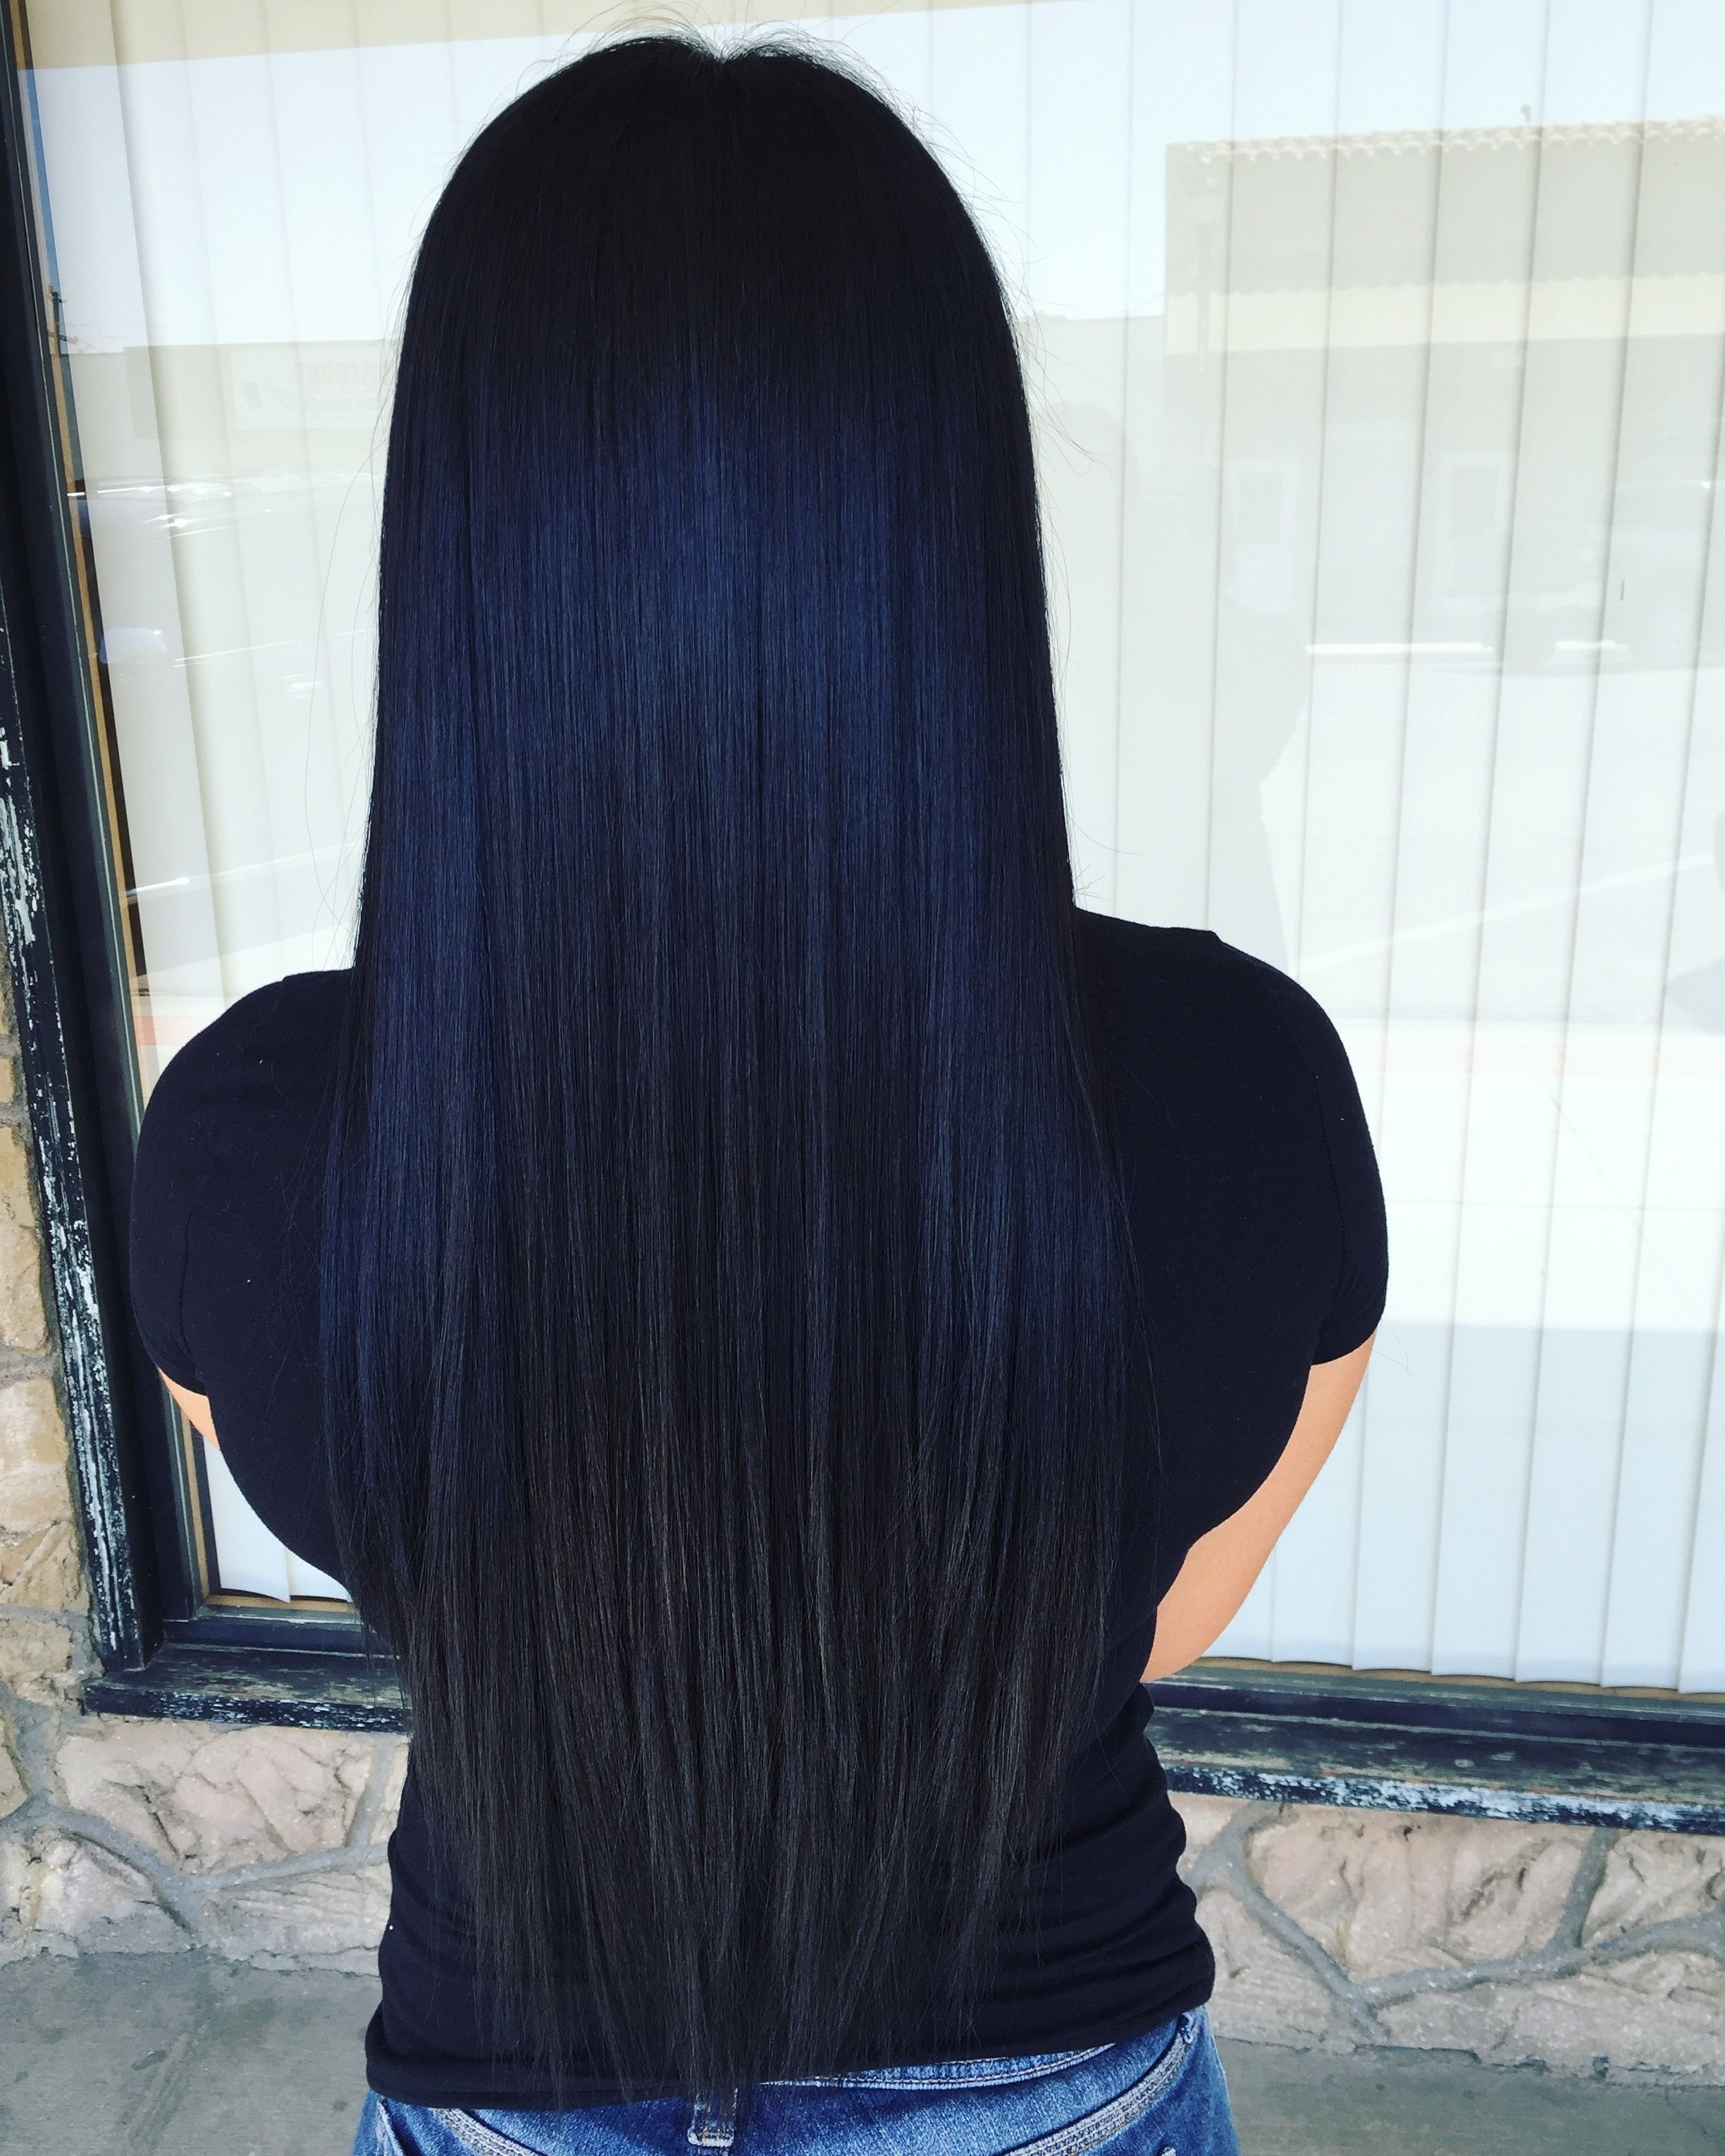 10 Great Blue And Black Hair Color Ideas 6 black hairstyle ideas youd love cheveux coiffures et coloration 2020